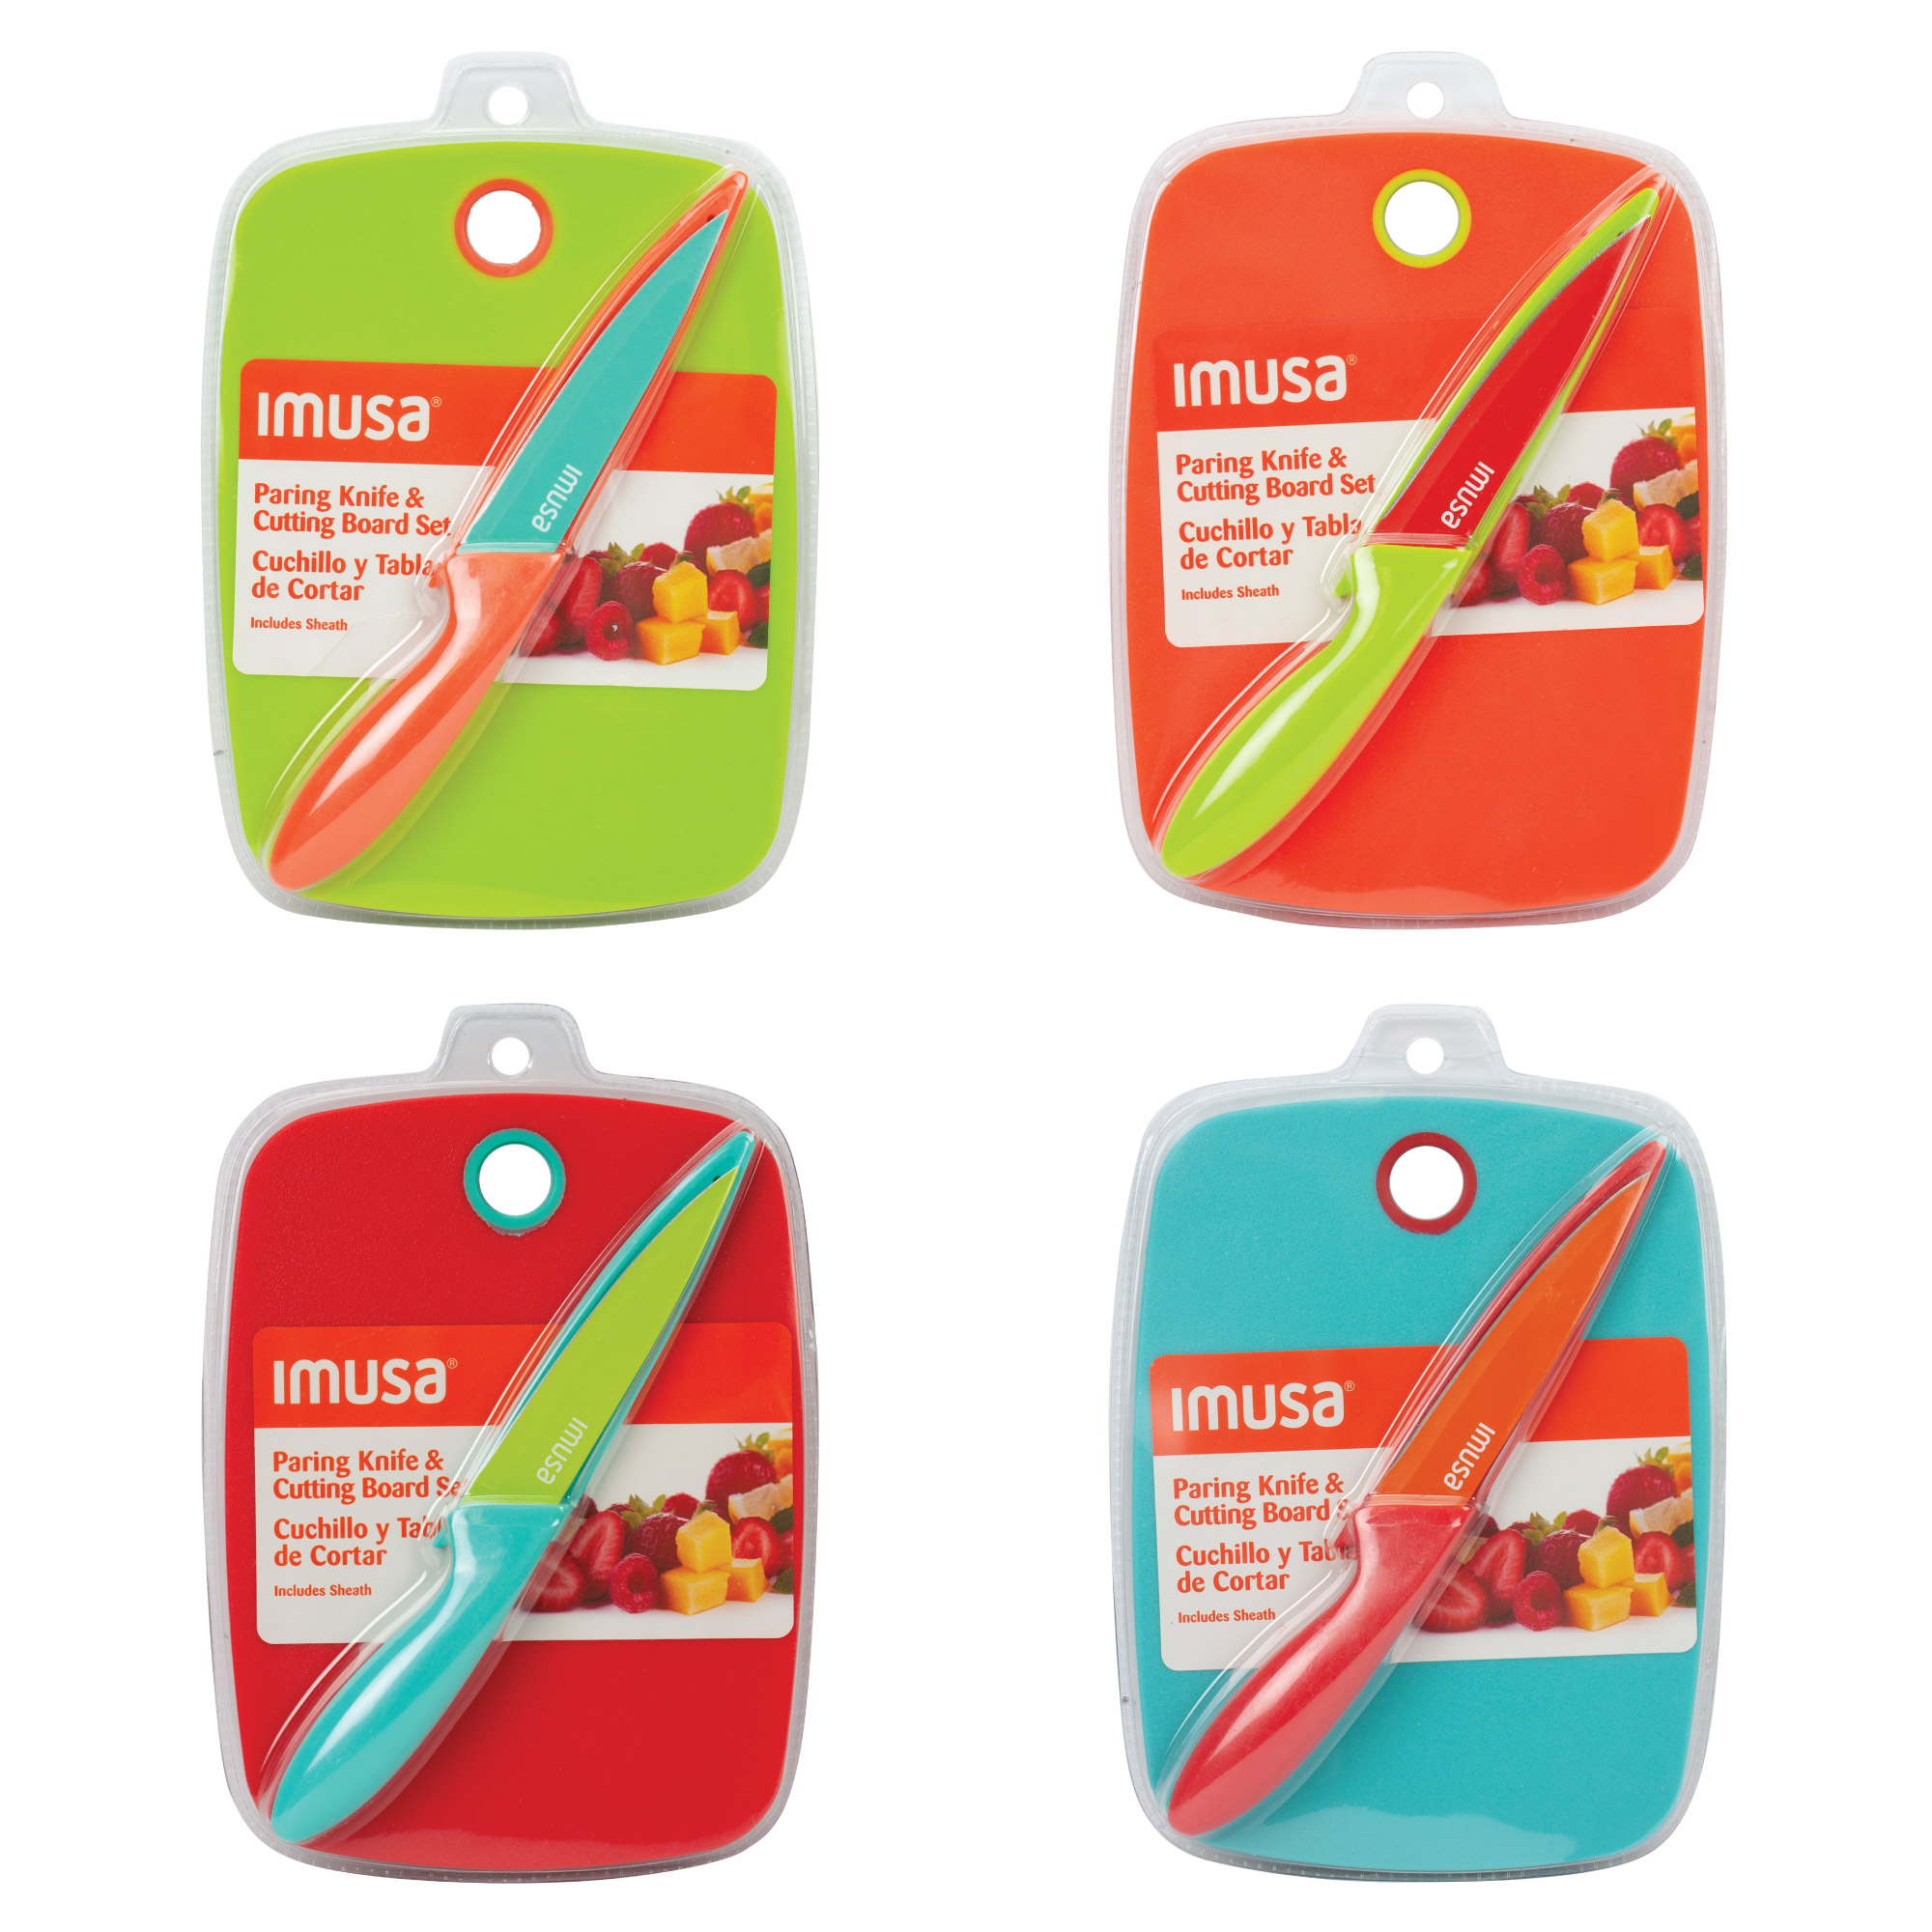 Imusa Cutting Board With Knife, Best Brands Cutting Board and Pairing Knife Set